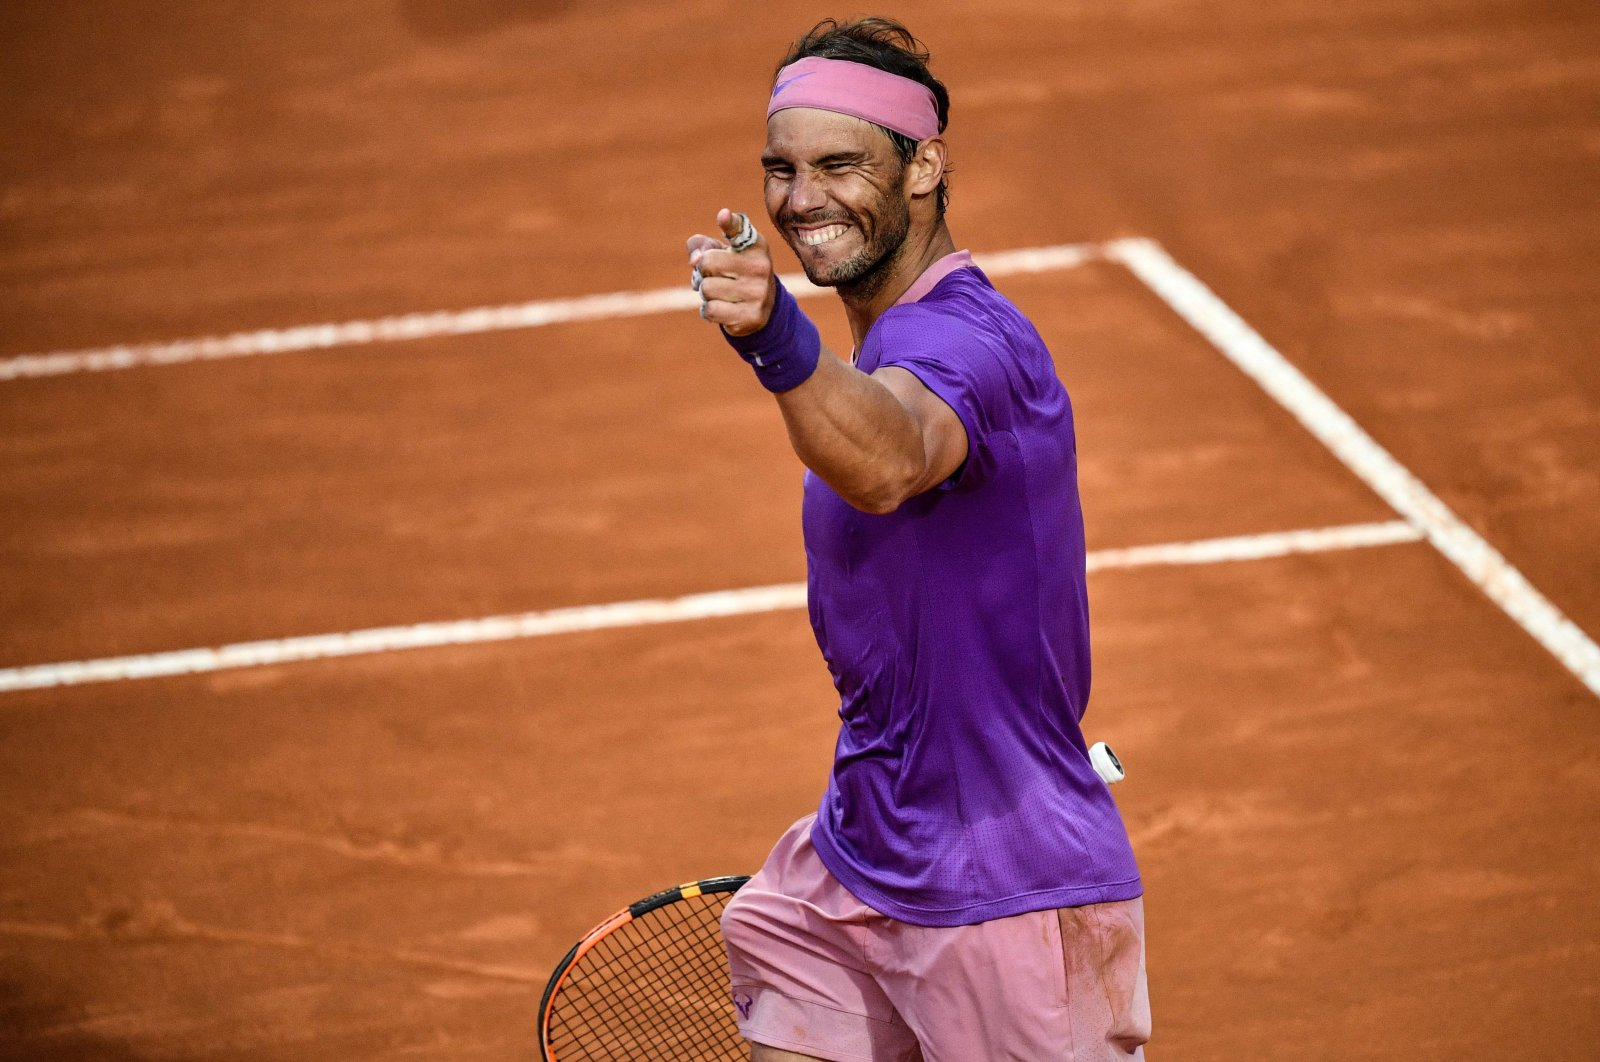 Spain's Rafael Nadal celebrates after defeating Serbia's Novak Djokovic in the Italian Tennis Open men's final, Rome, Italy, May 16, 2021. (AFP Photo)